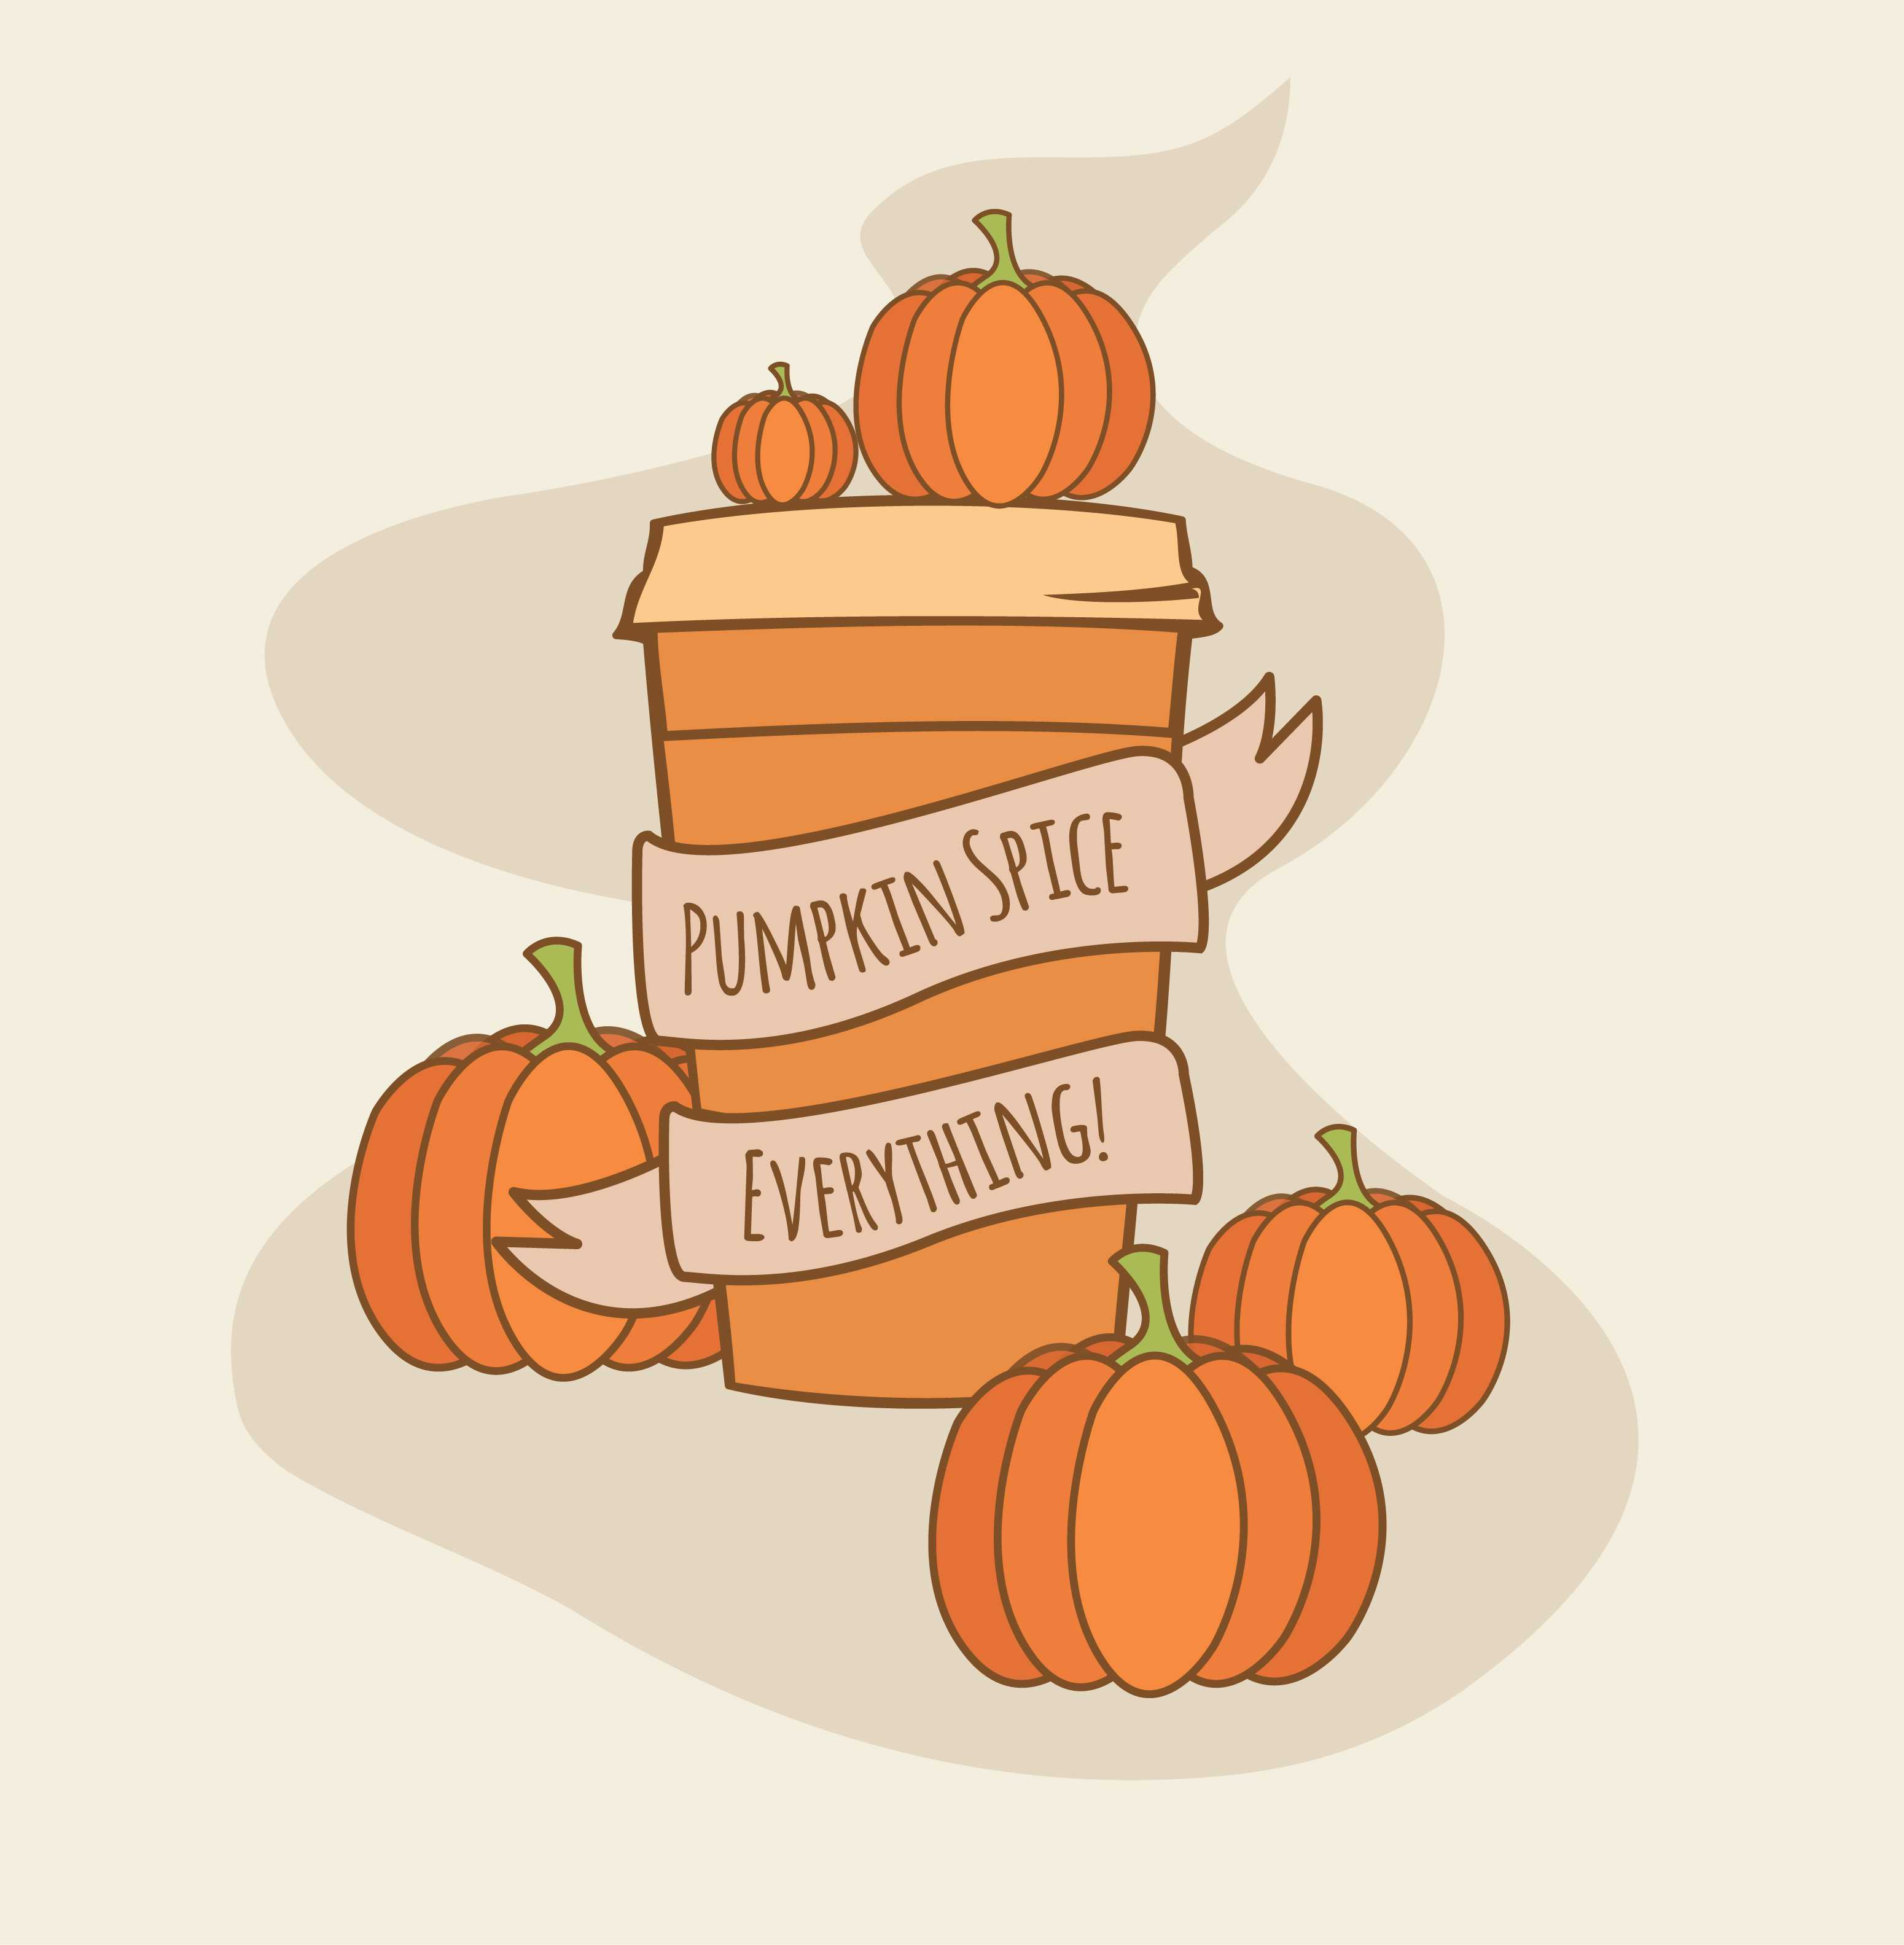 pumpkin spice peaks interest for autumn themed products the record clip art softball spring free free clip art softball